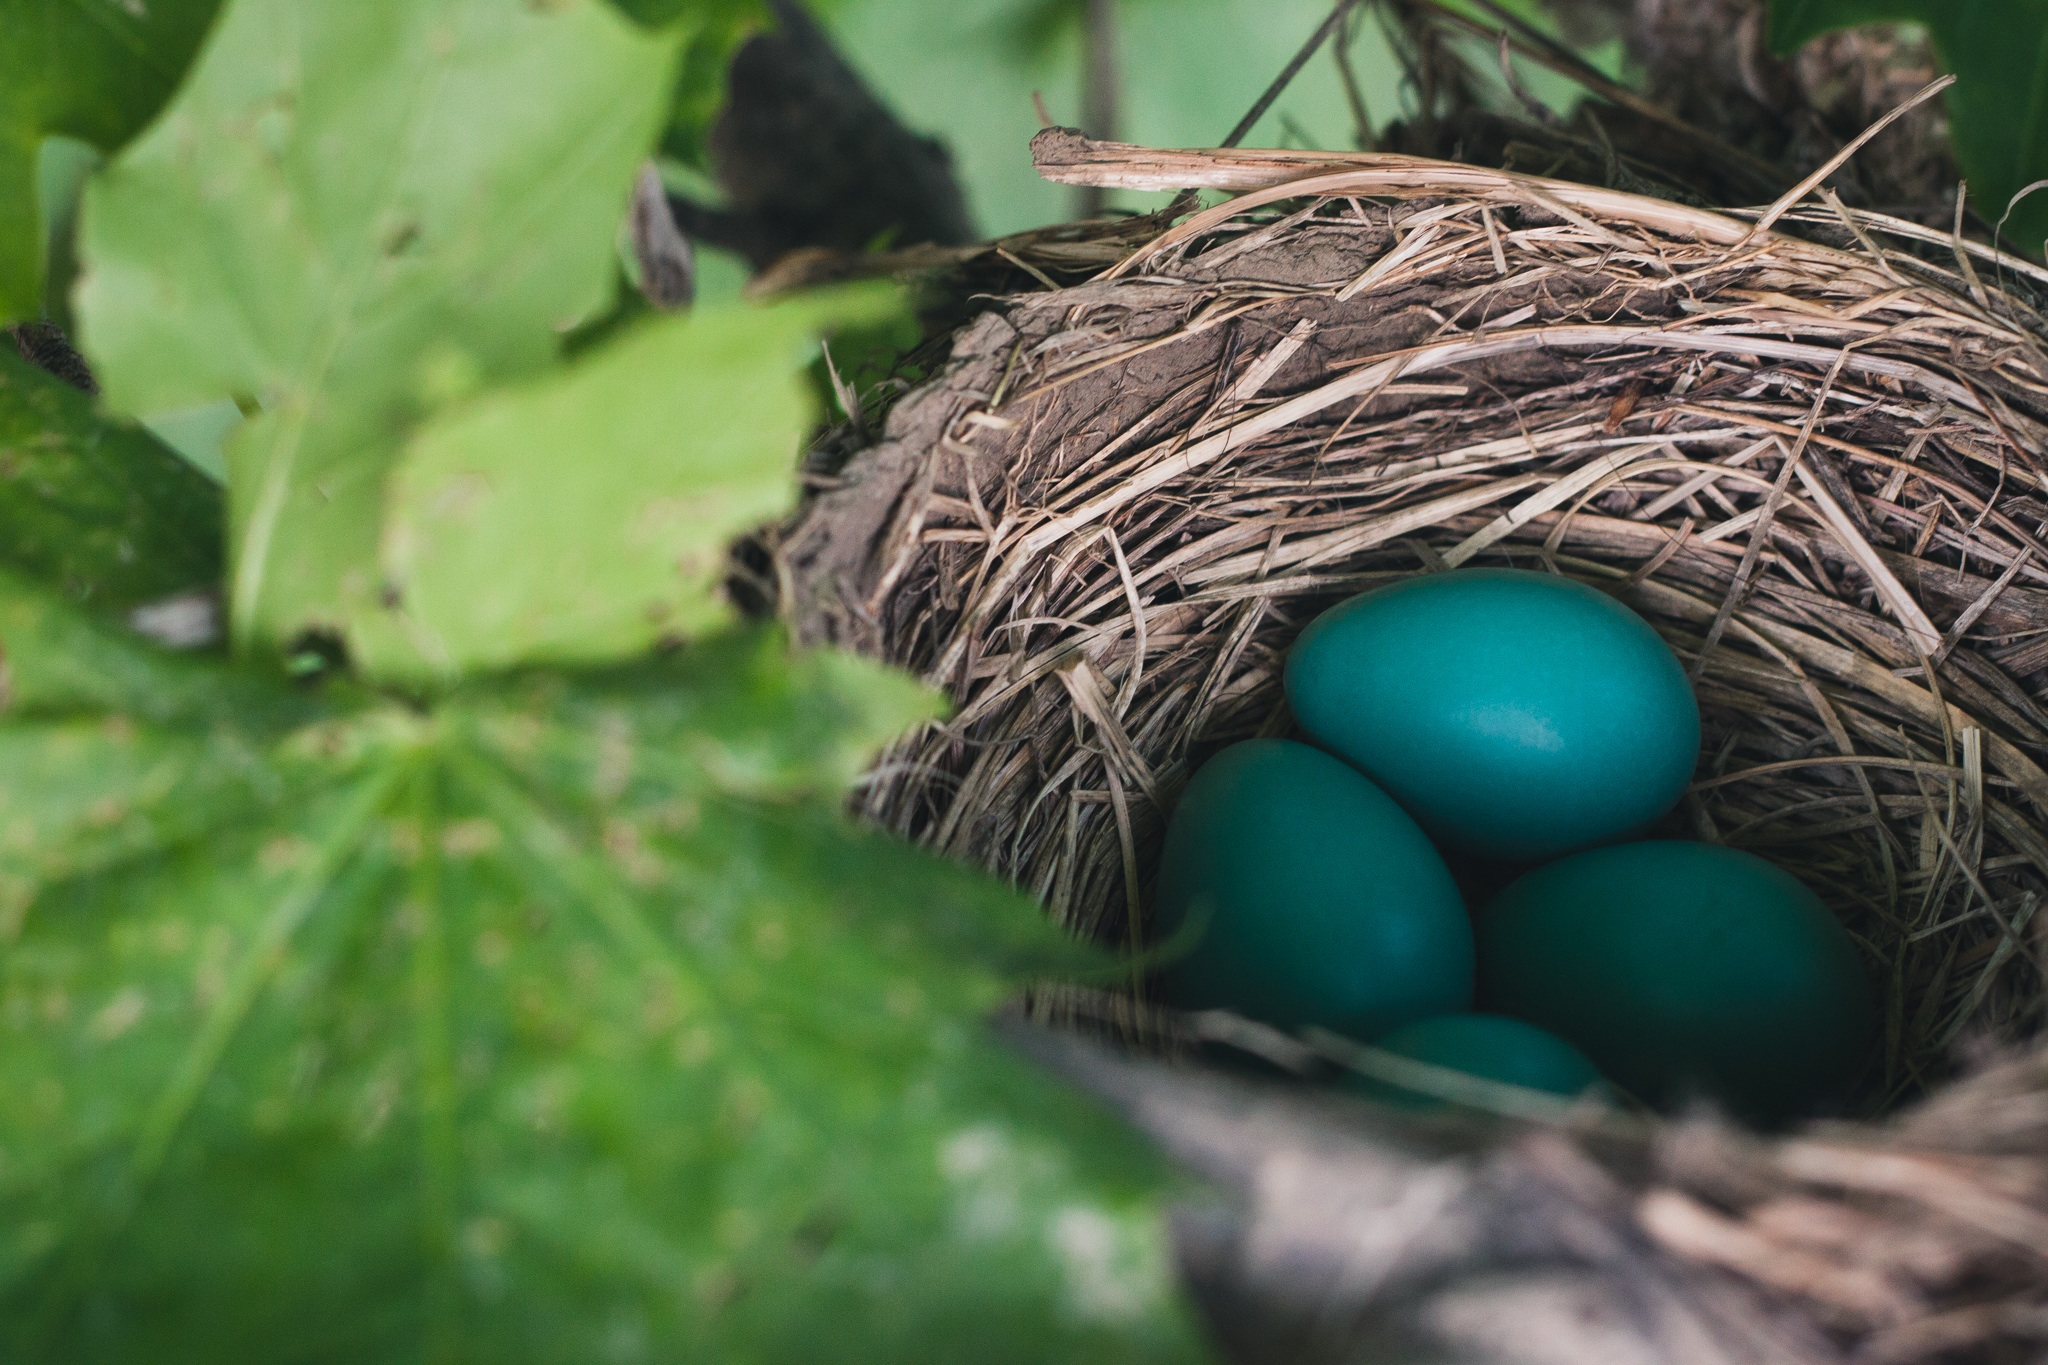 A nest with blue eggs